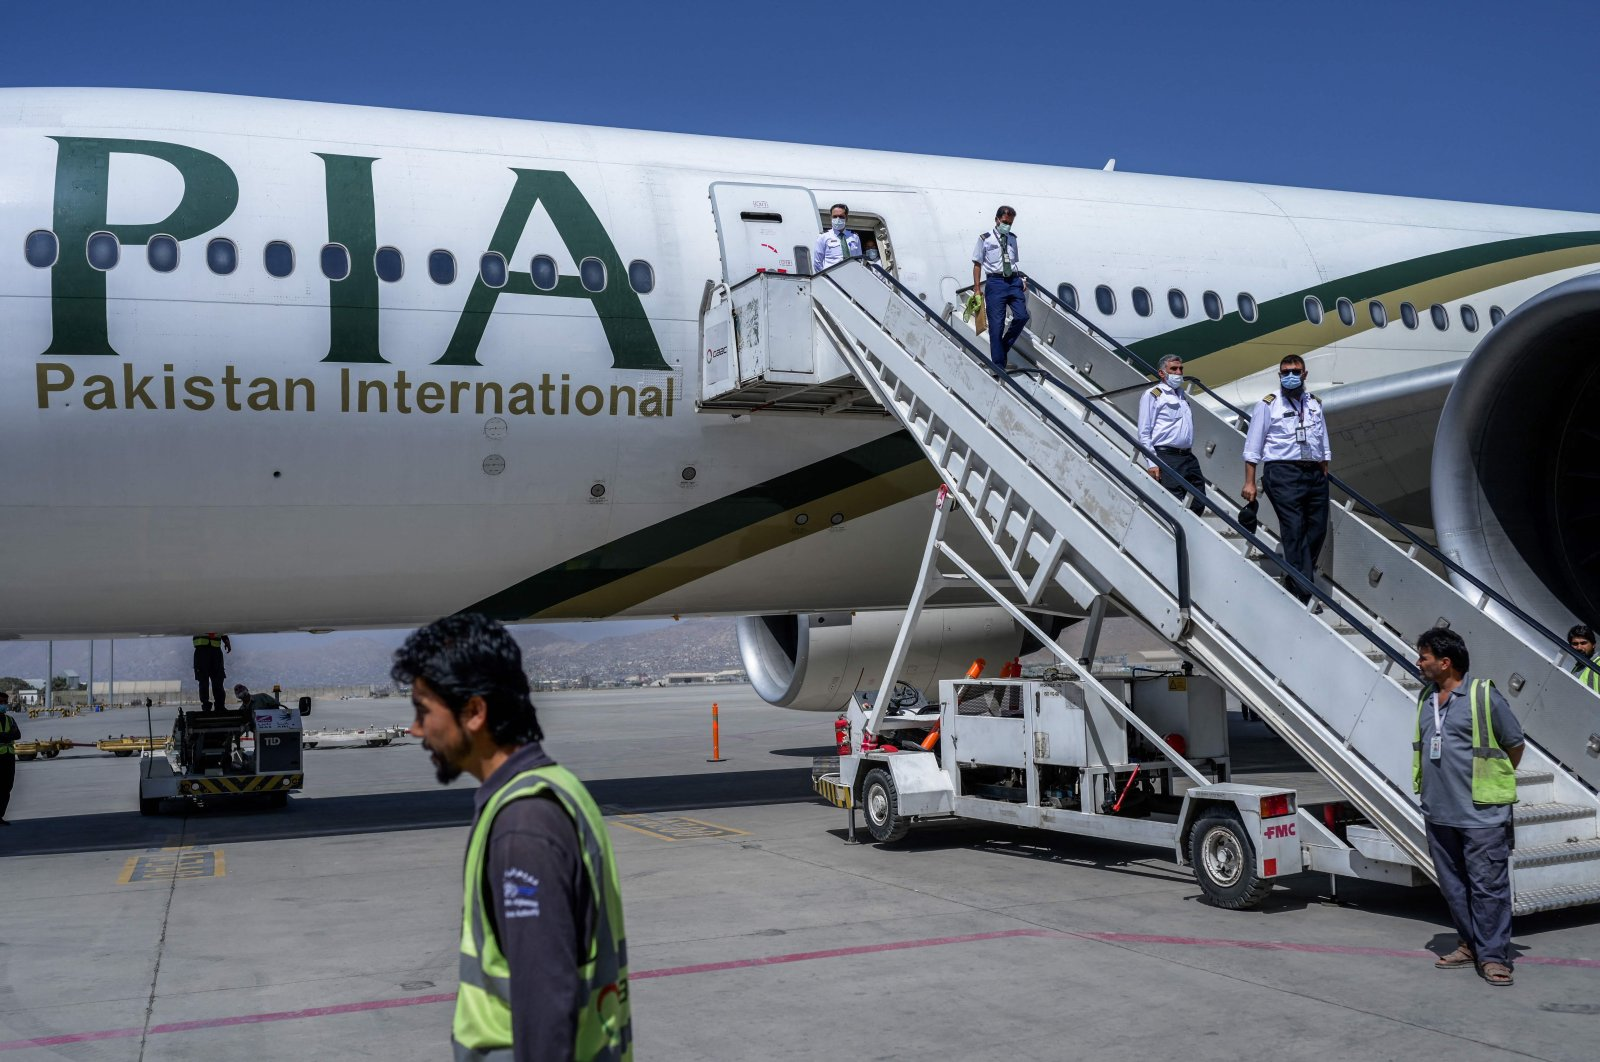 Crew members disembark from a Pakistan International Airways (PIA) flight, the first commercial international flight since the Taliban retook power last month, at Kabul airport, Afghanistan, Sept. 13, 2021. (AFP Photo)